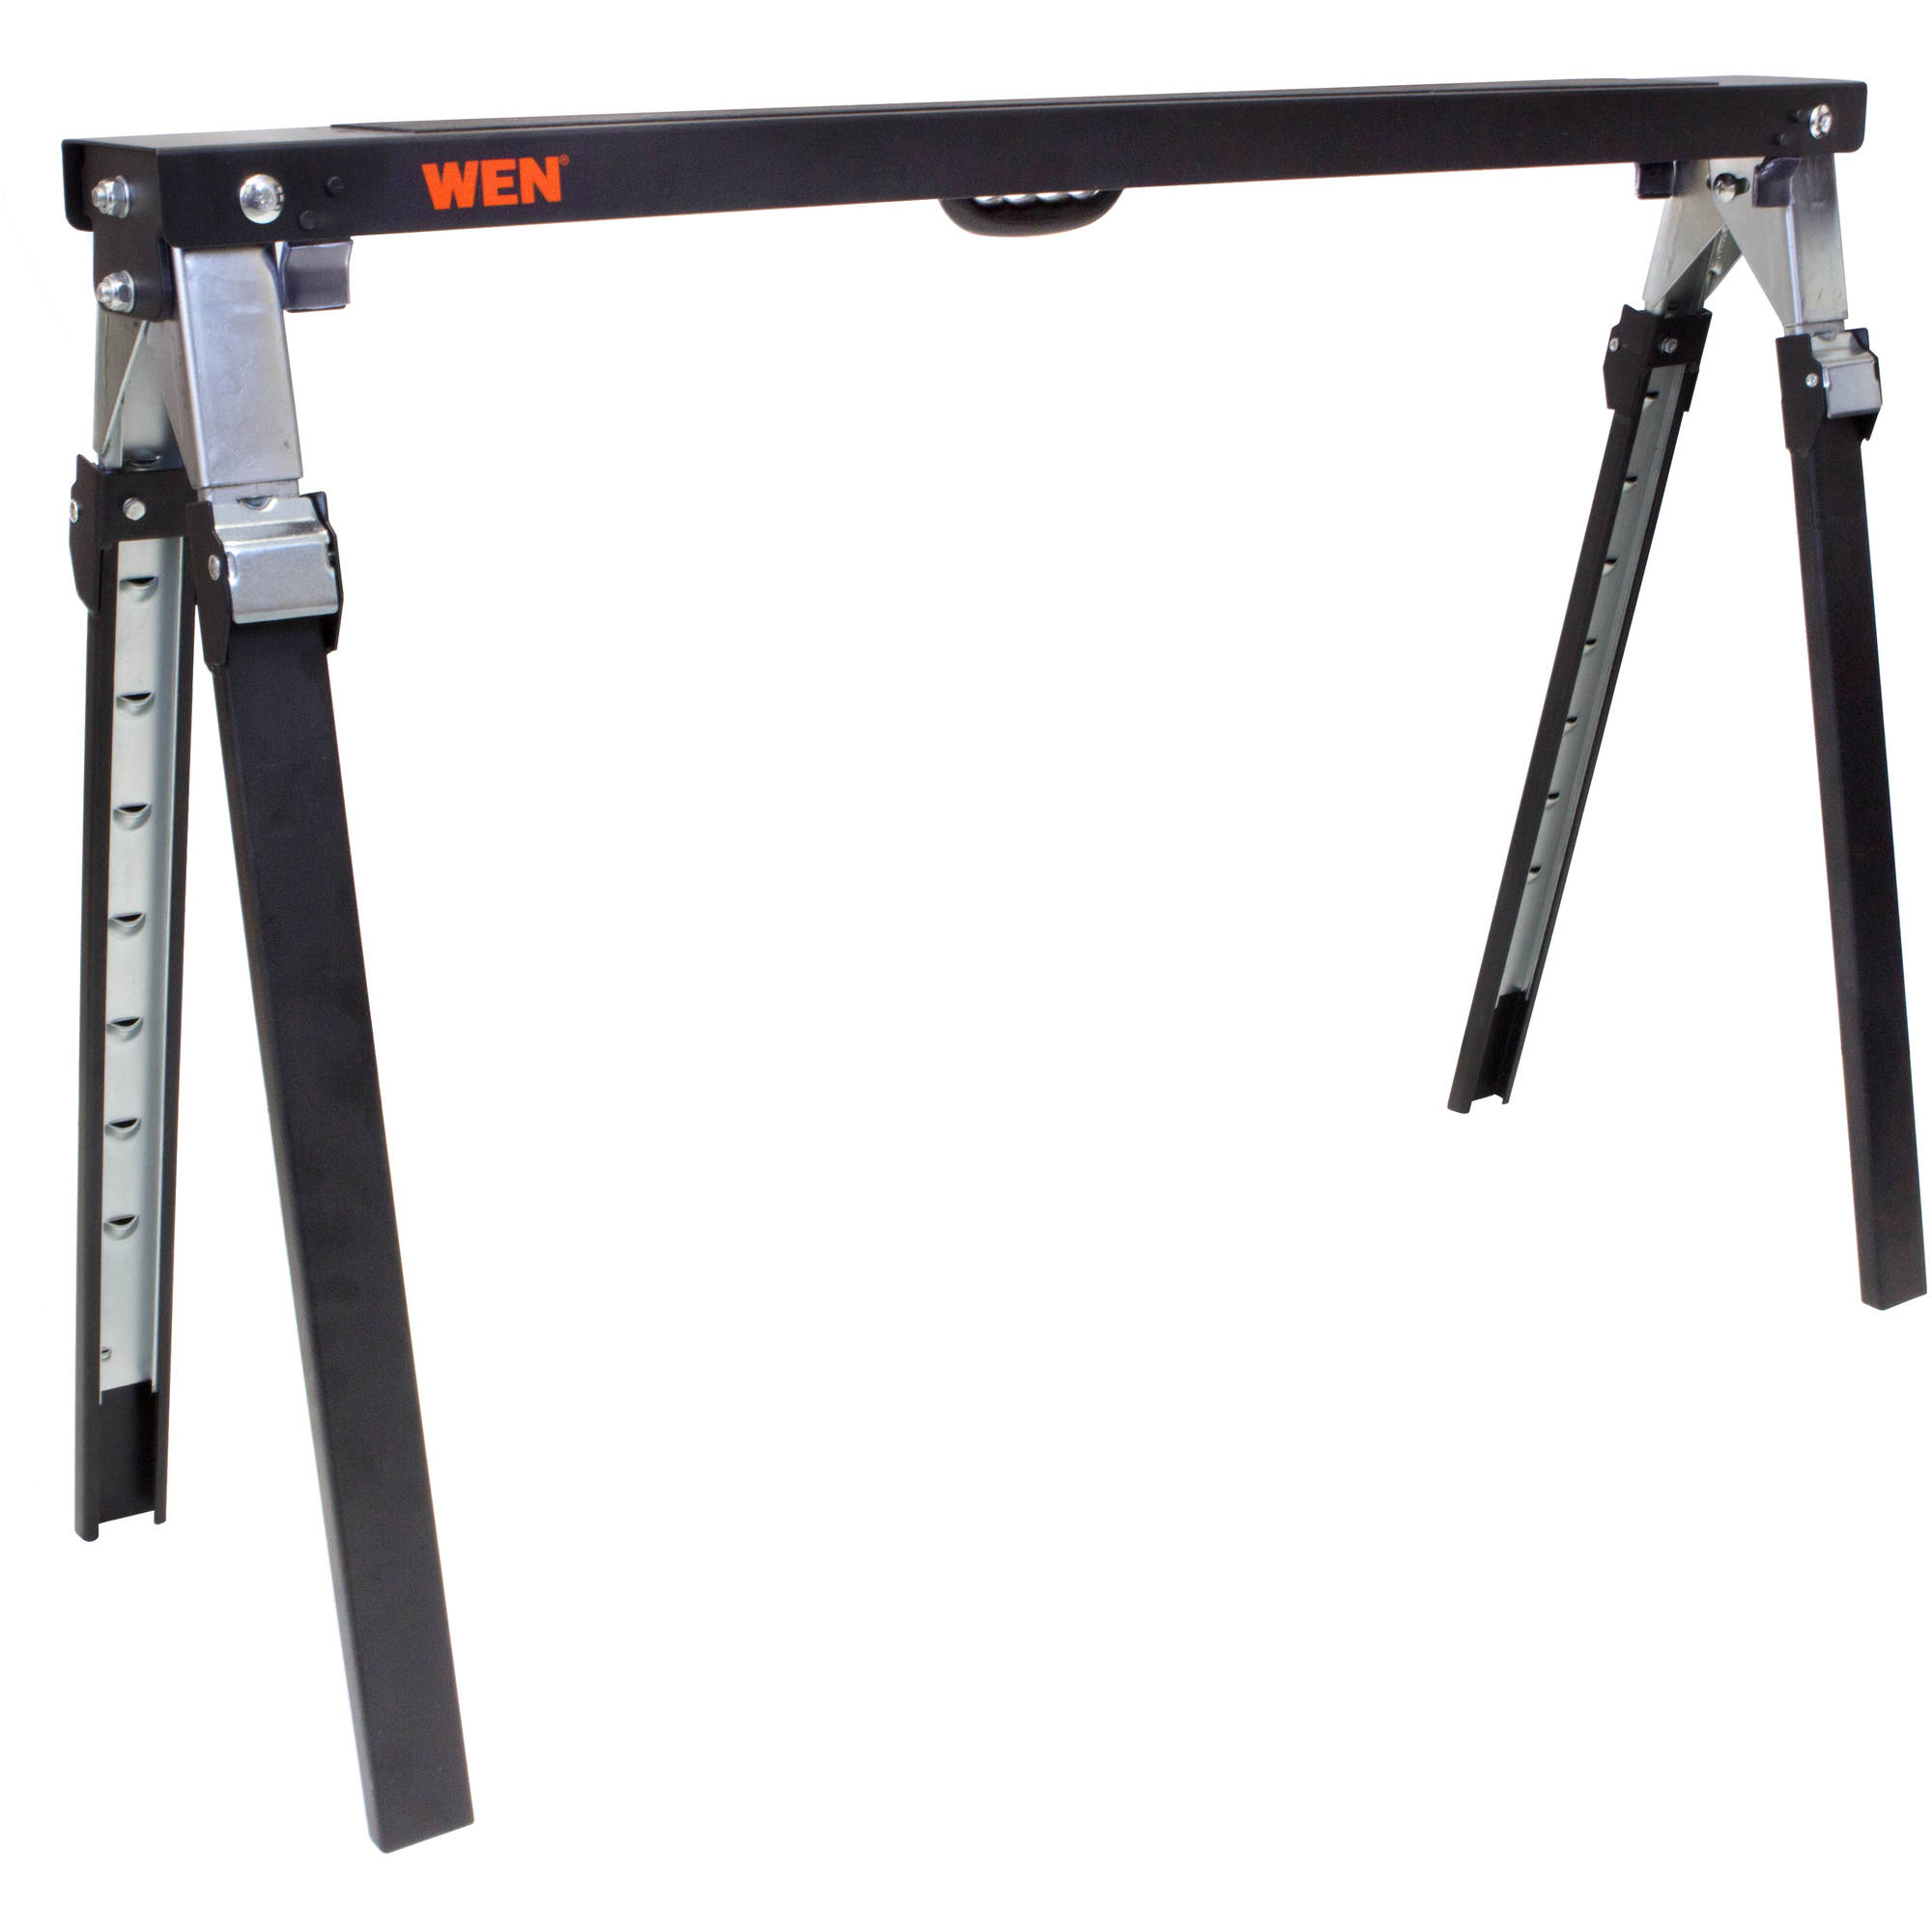 WEN 1000-Pound Capacity Adjustable Folding Sawhorse